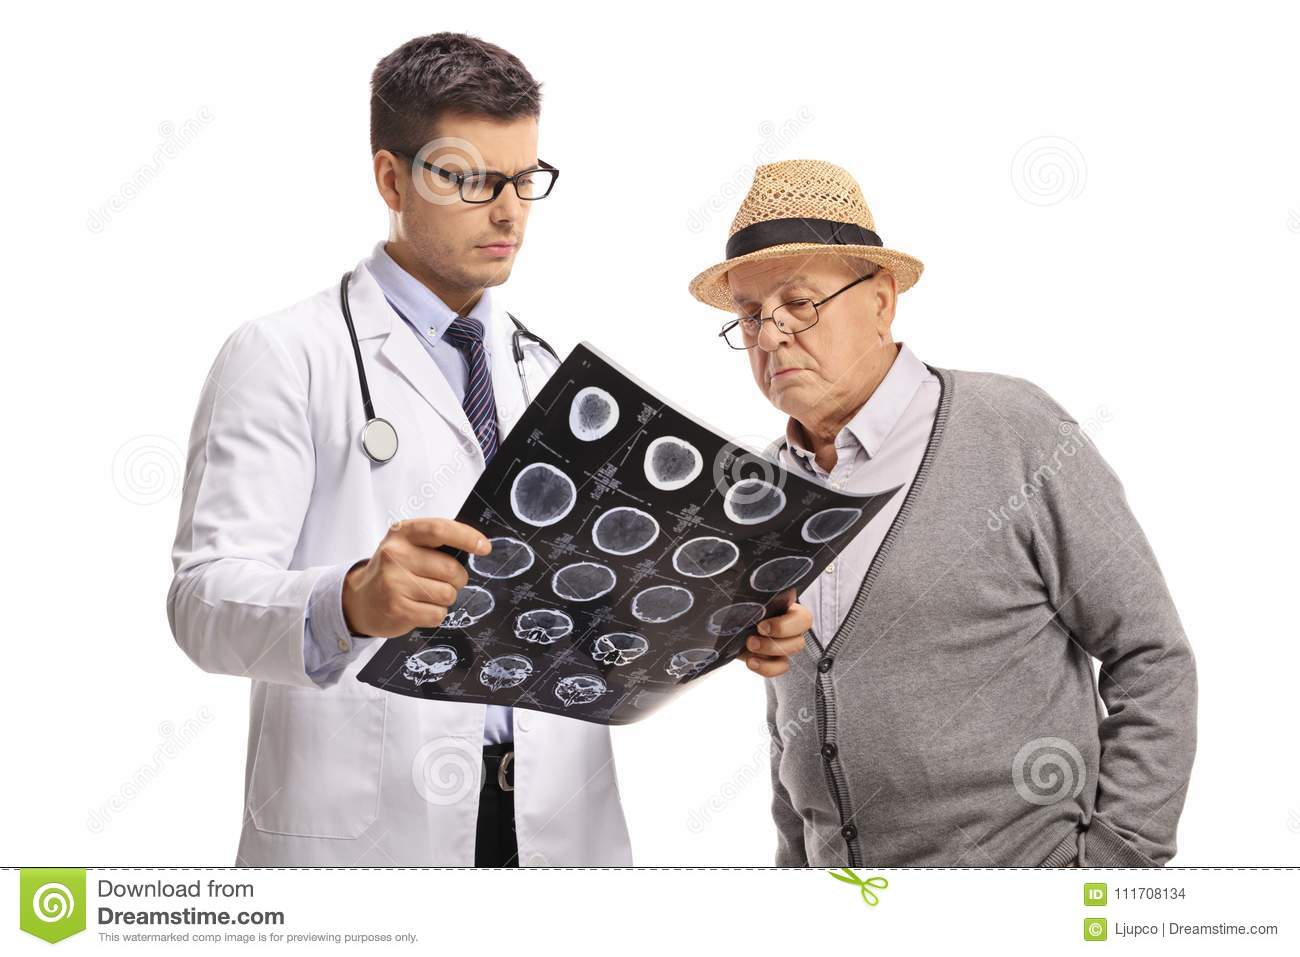 Doctor and an elderly patient looking at an x-ray scan